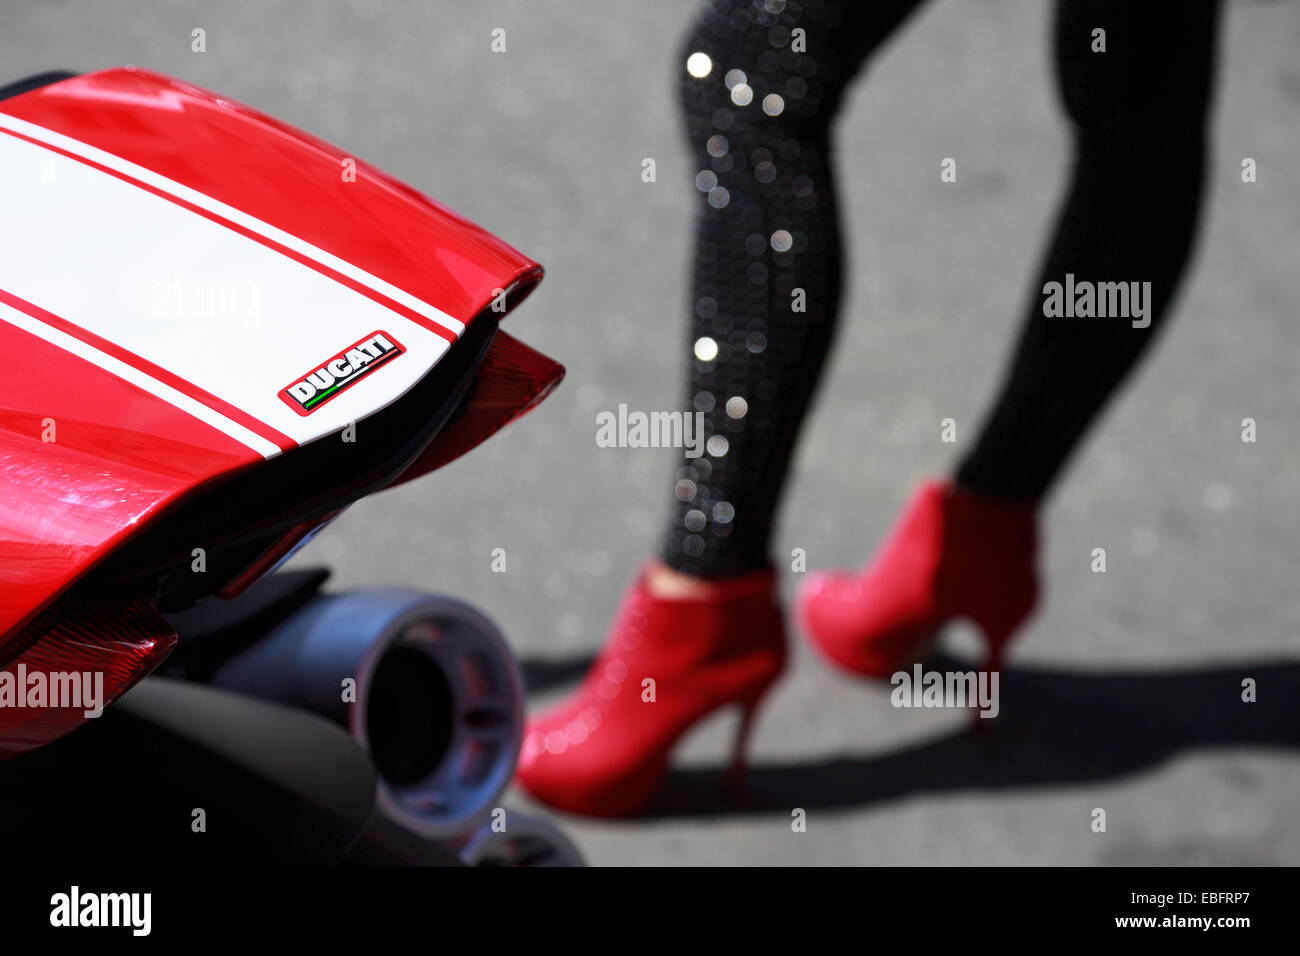 Ducati motorcycle detail with a woman's legs wearing red high heels in the background Stock Photo